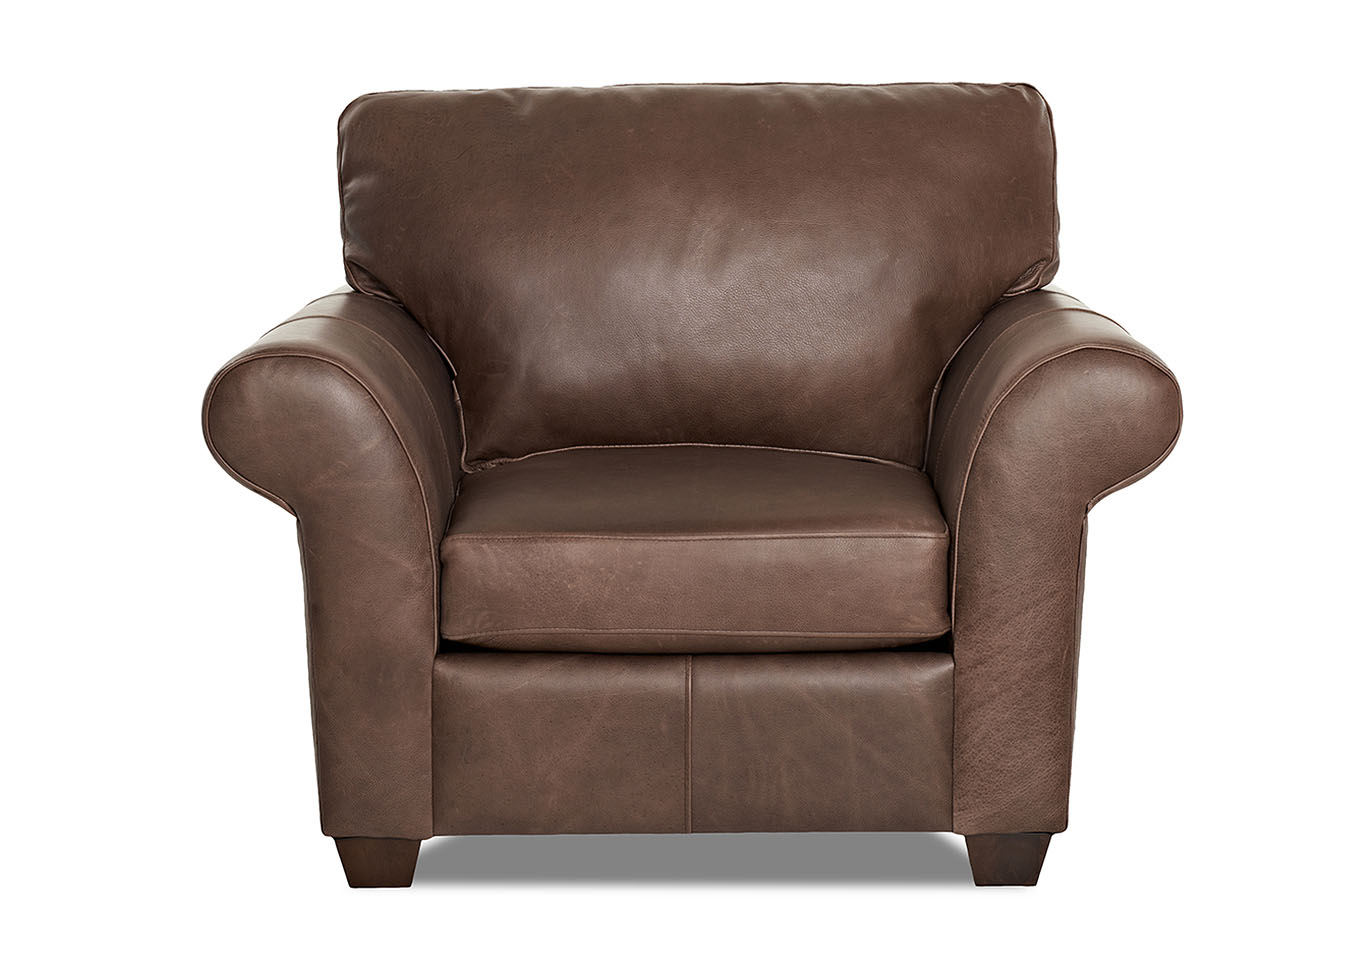 Moorland Leather Stationary Chair,Klaussner Home Furnishings